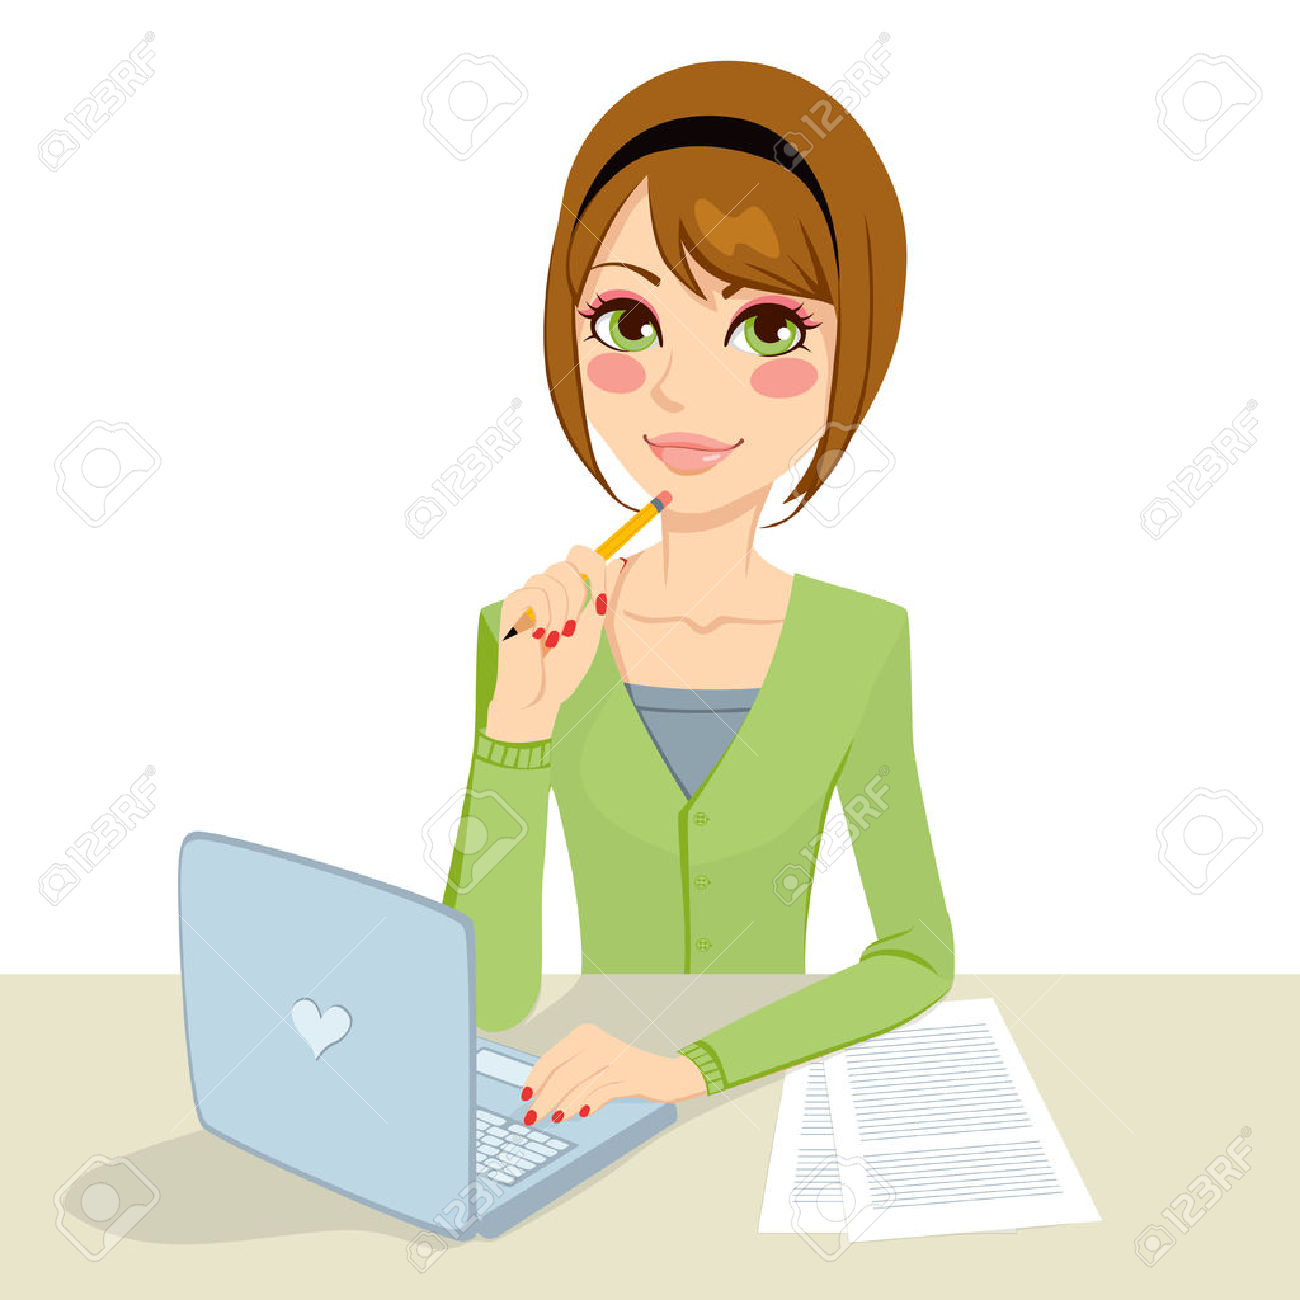 clipart secretary typing - Clipground